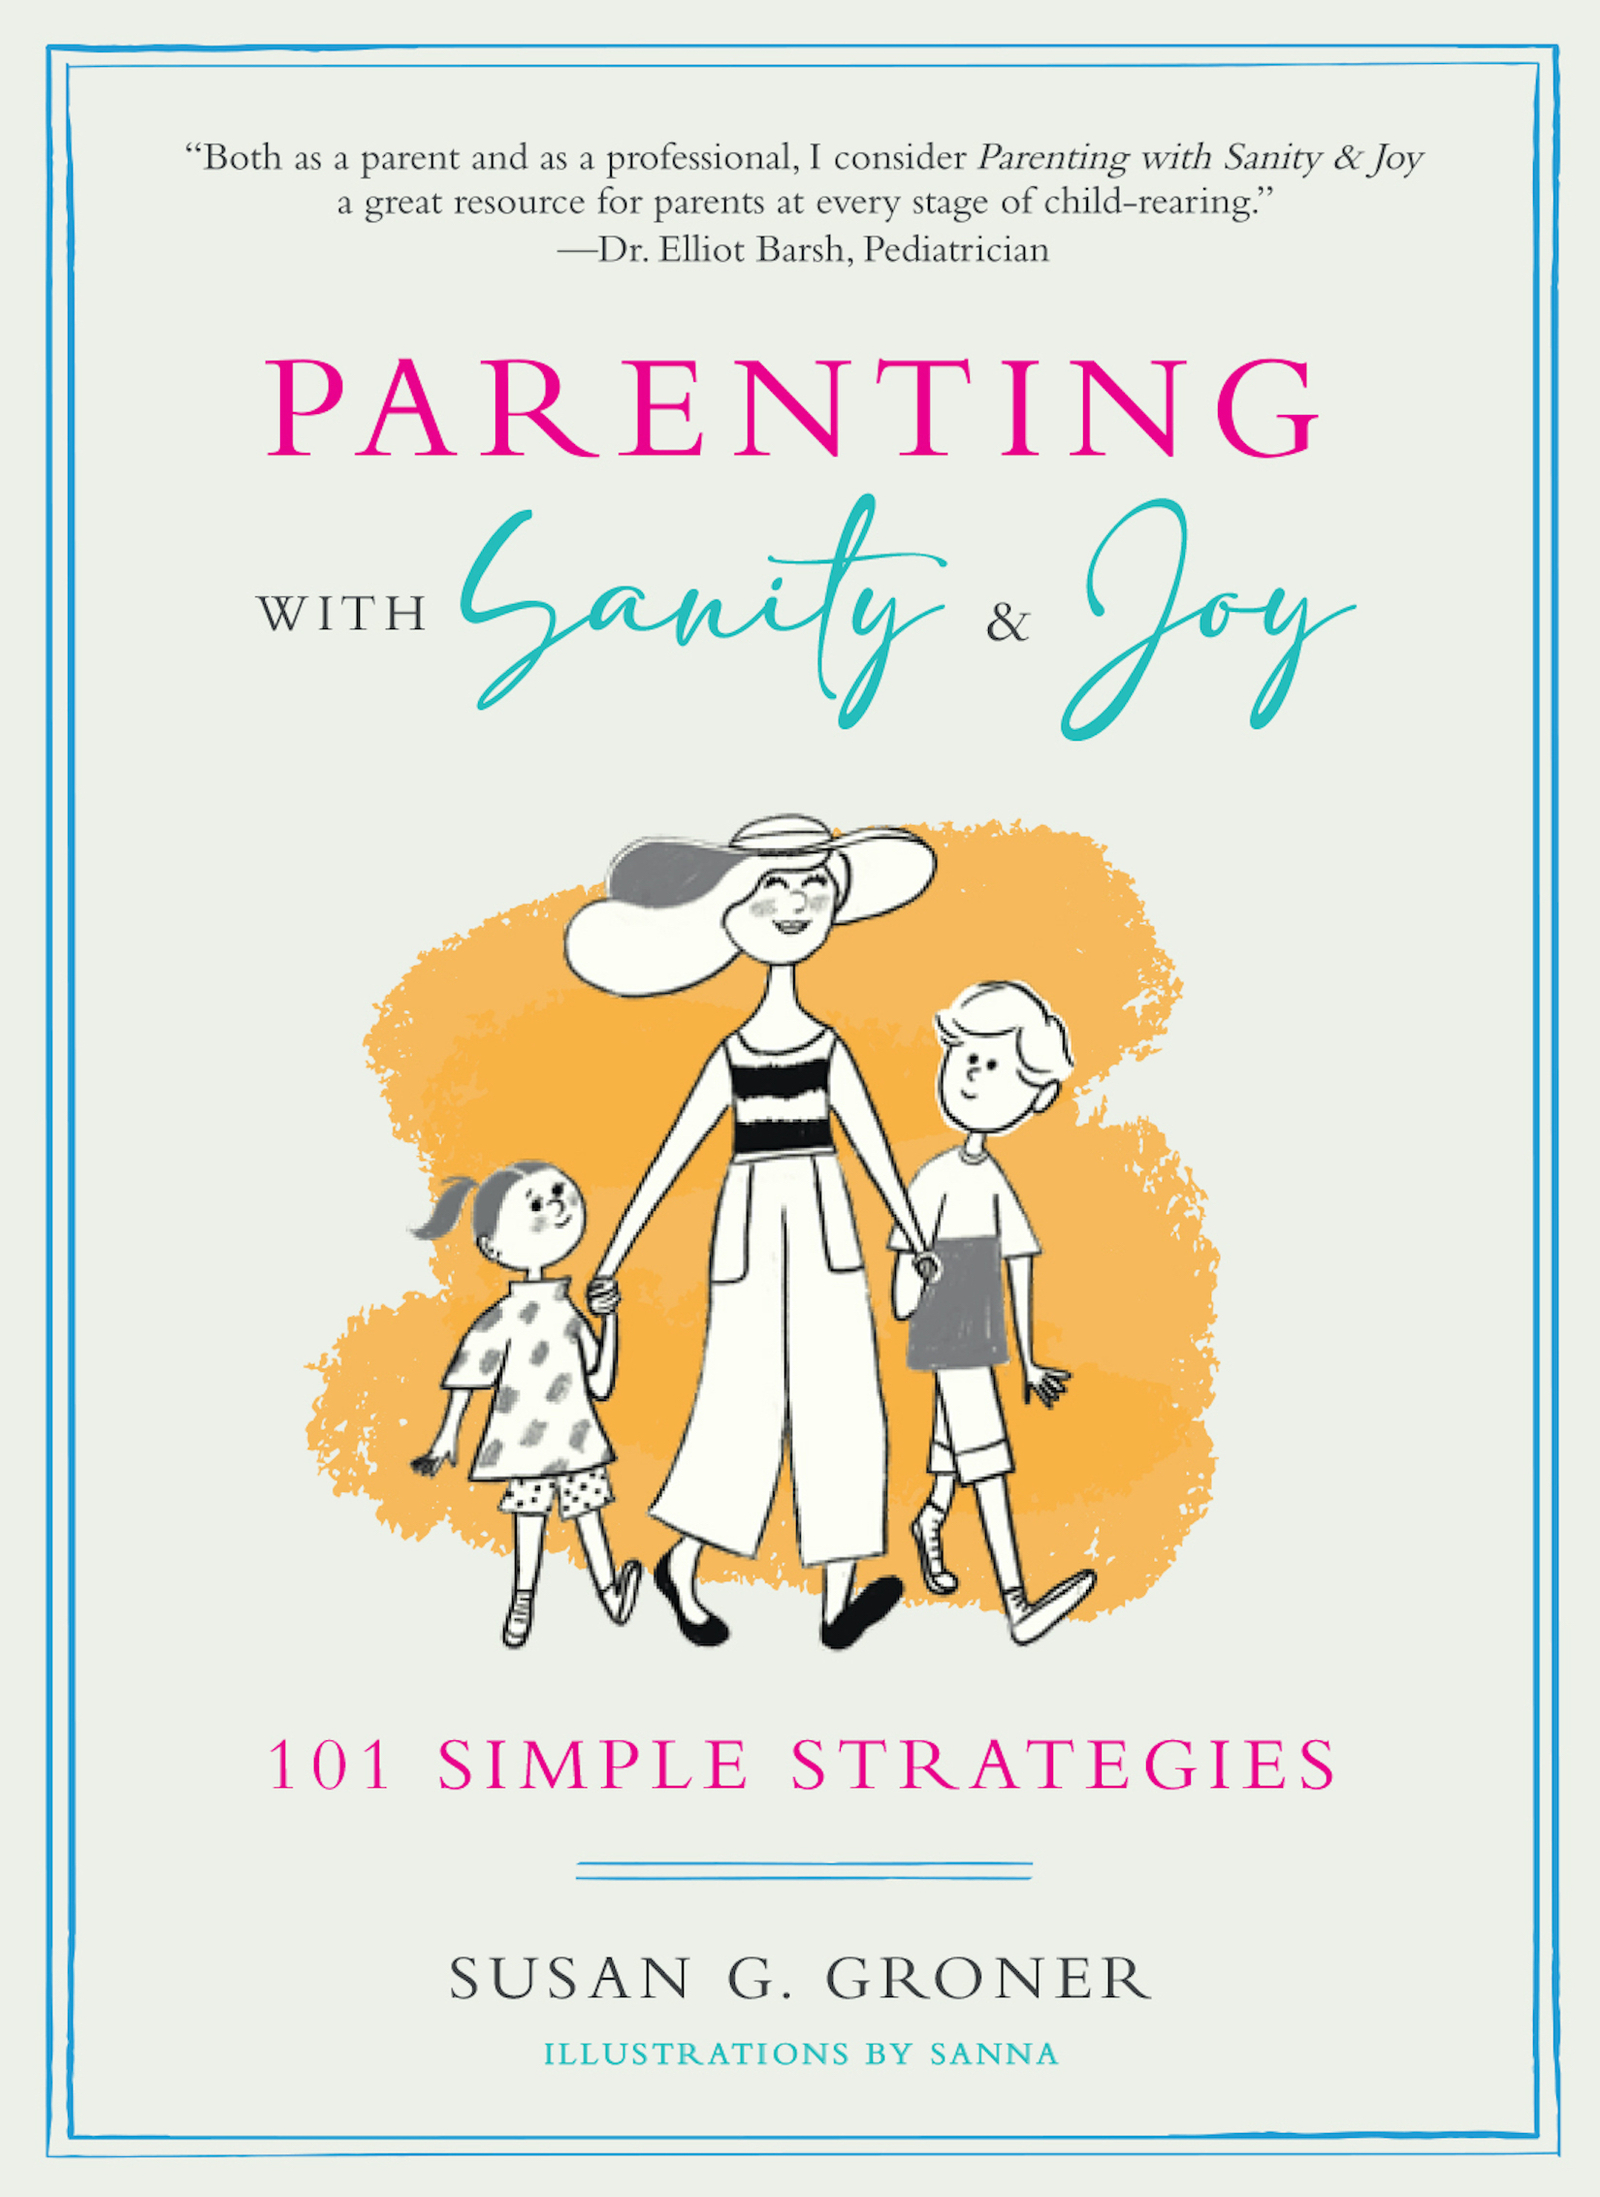 Parenting with Sanity & Joy